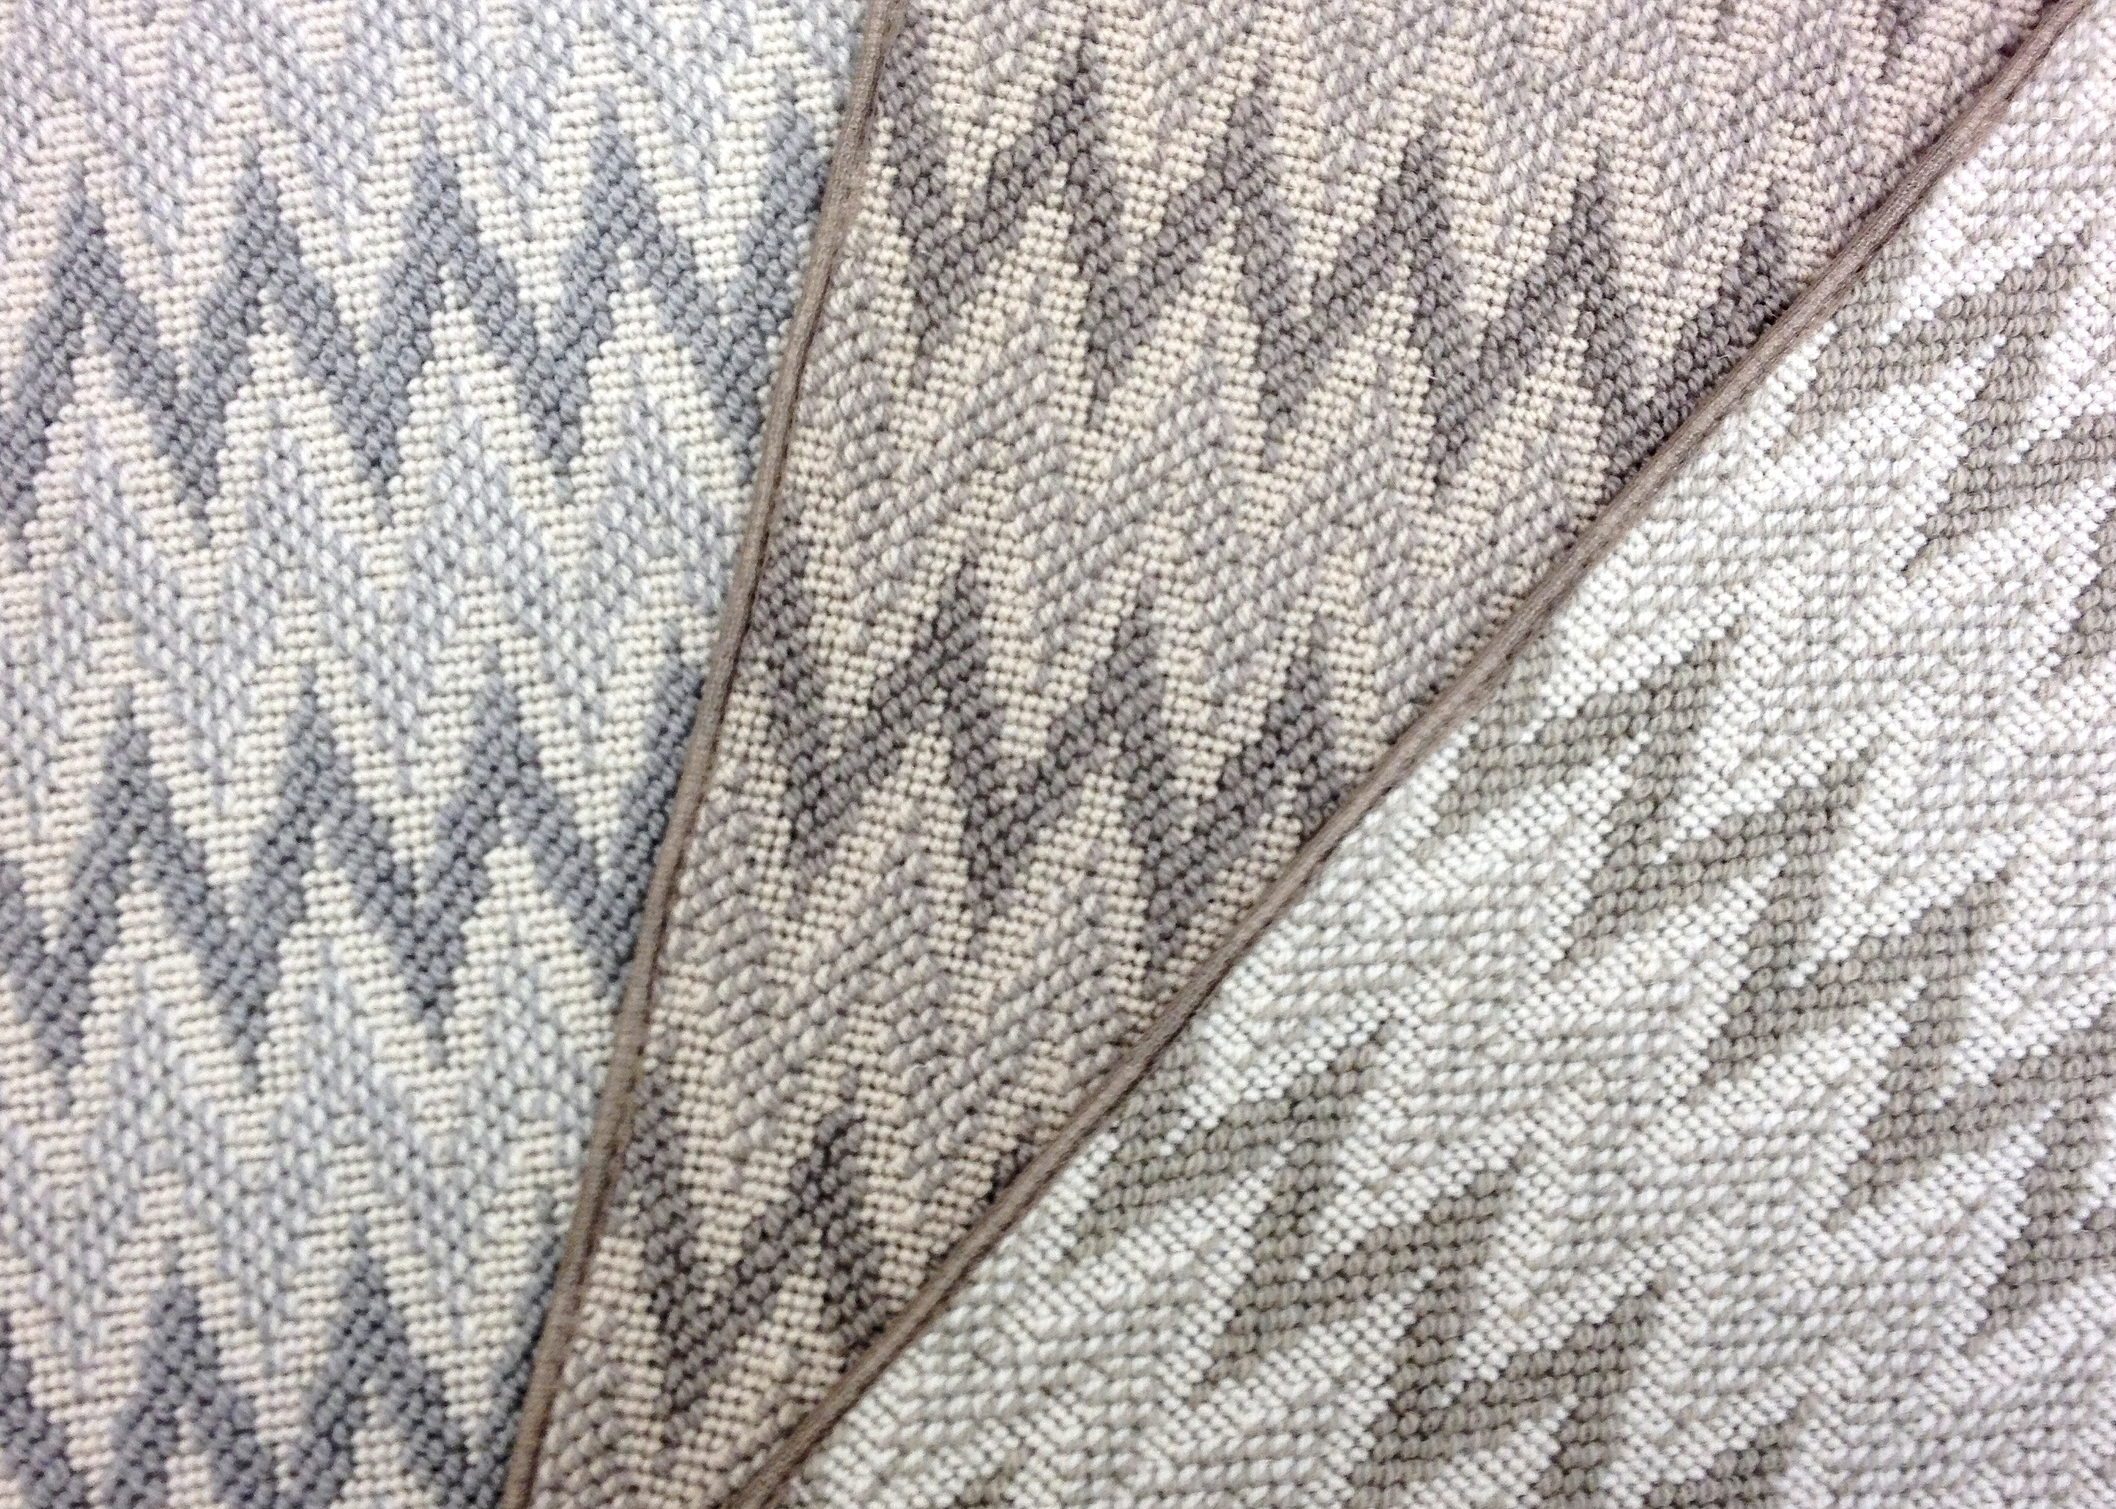 Wool chevron patterned carpet samples in neutrals